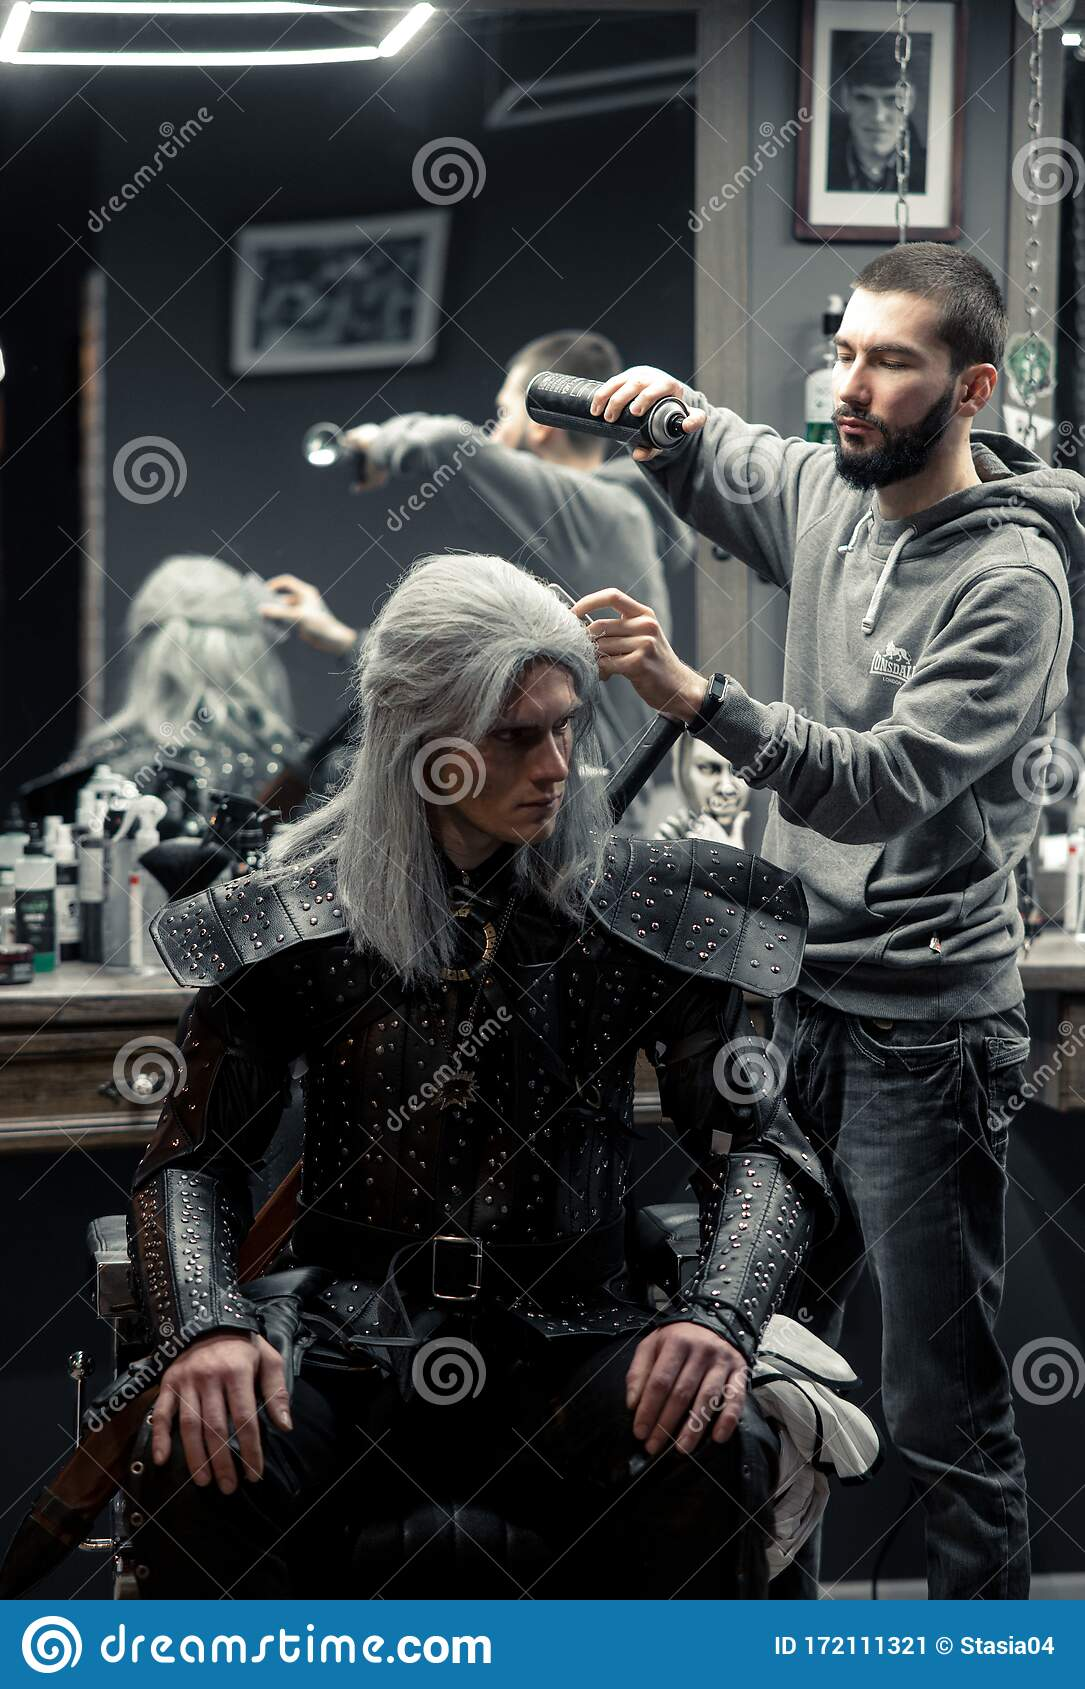 Cosplayer In Image Of A Character Geralt Of Rivia From The Game Or Series The Witcher Makes Hair Styling At Barbershop Editorial Photo Image Of Caucasian Film 172111321